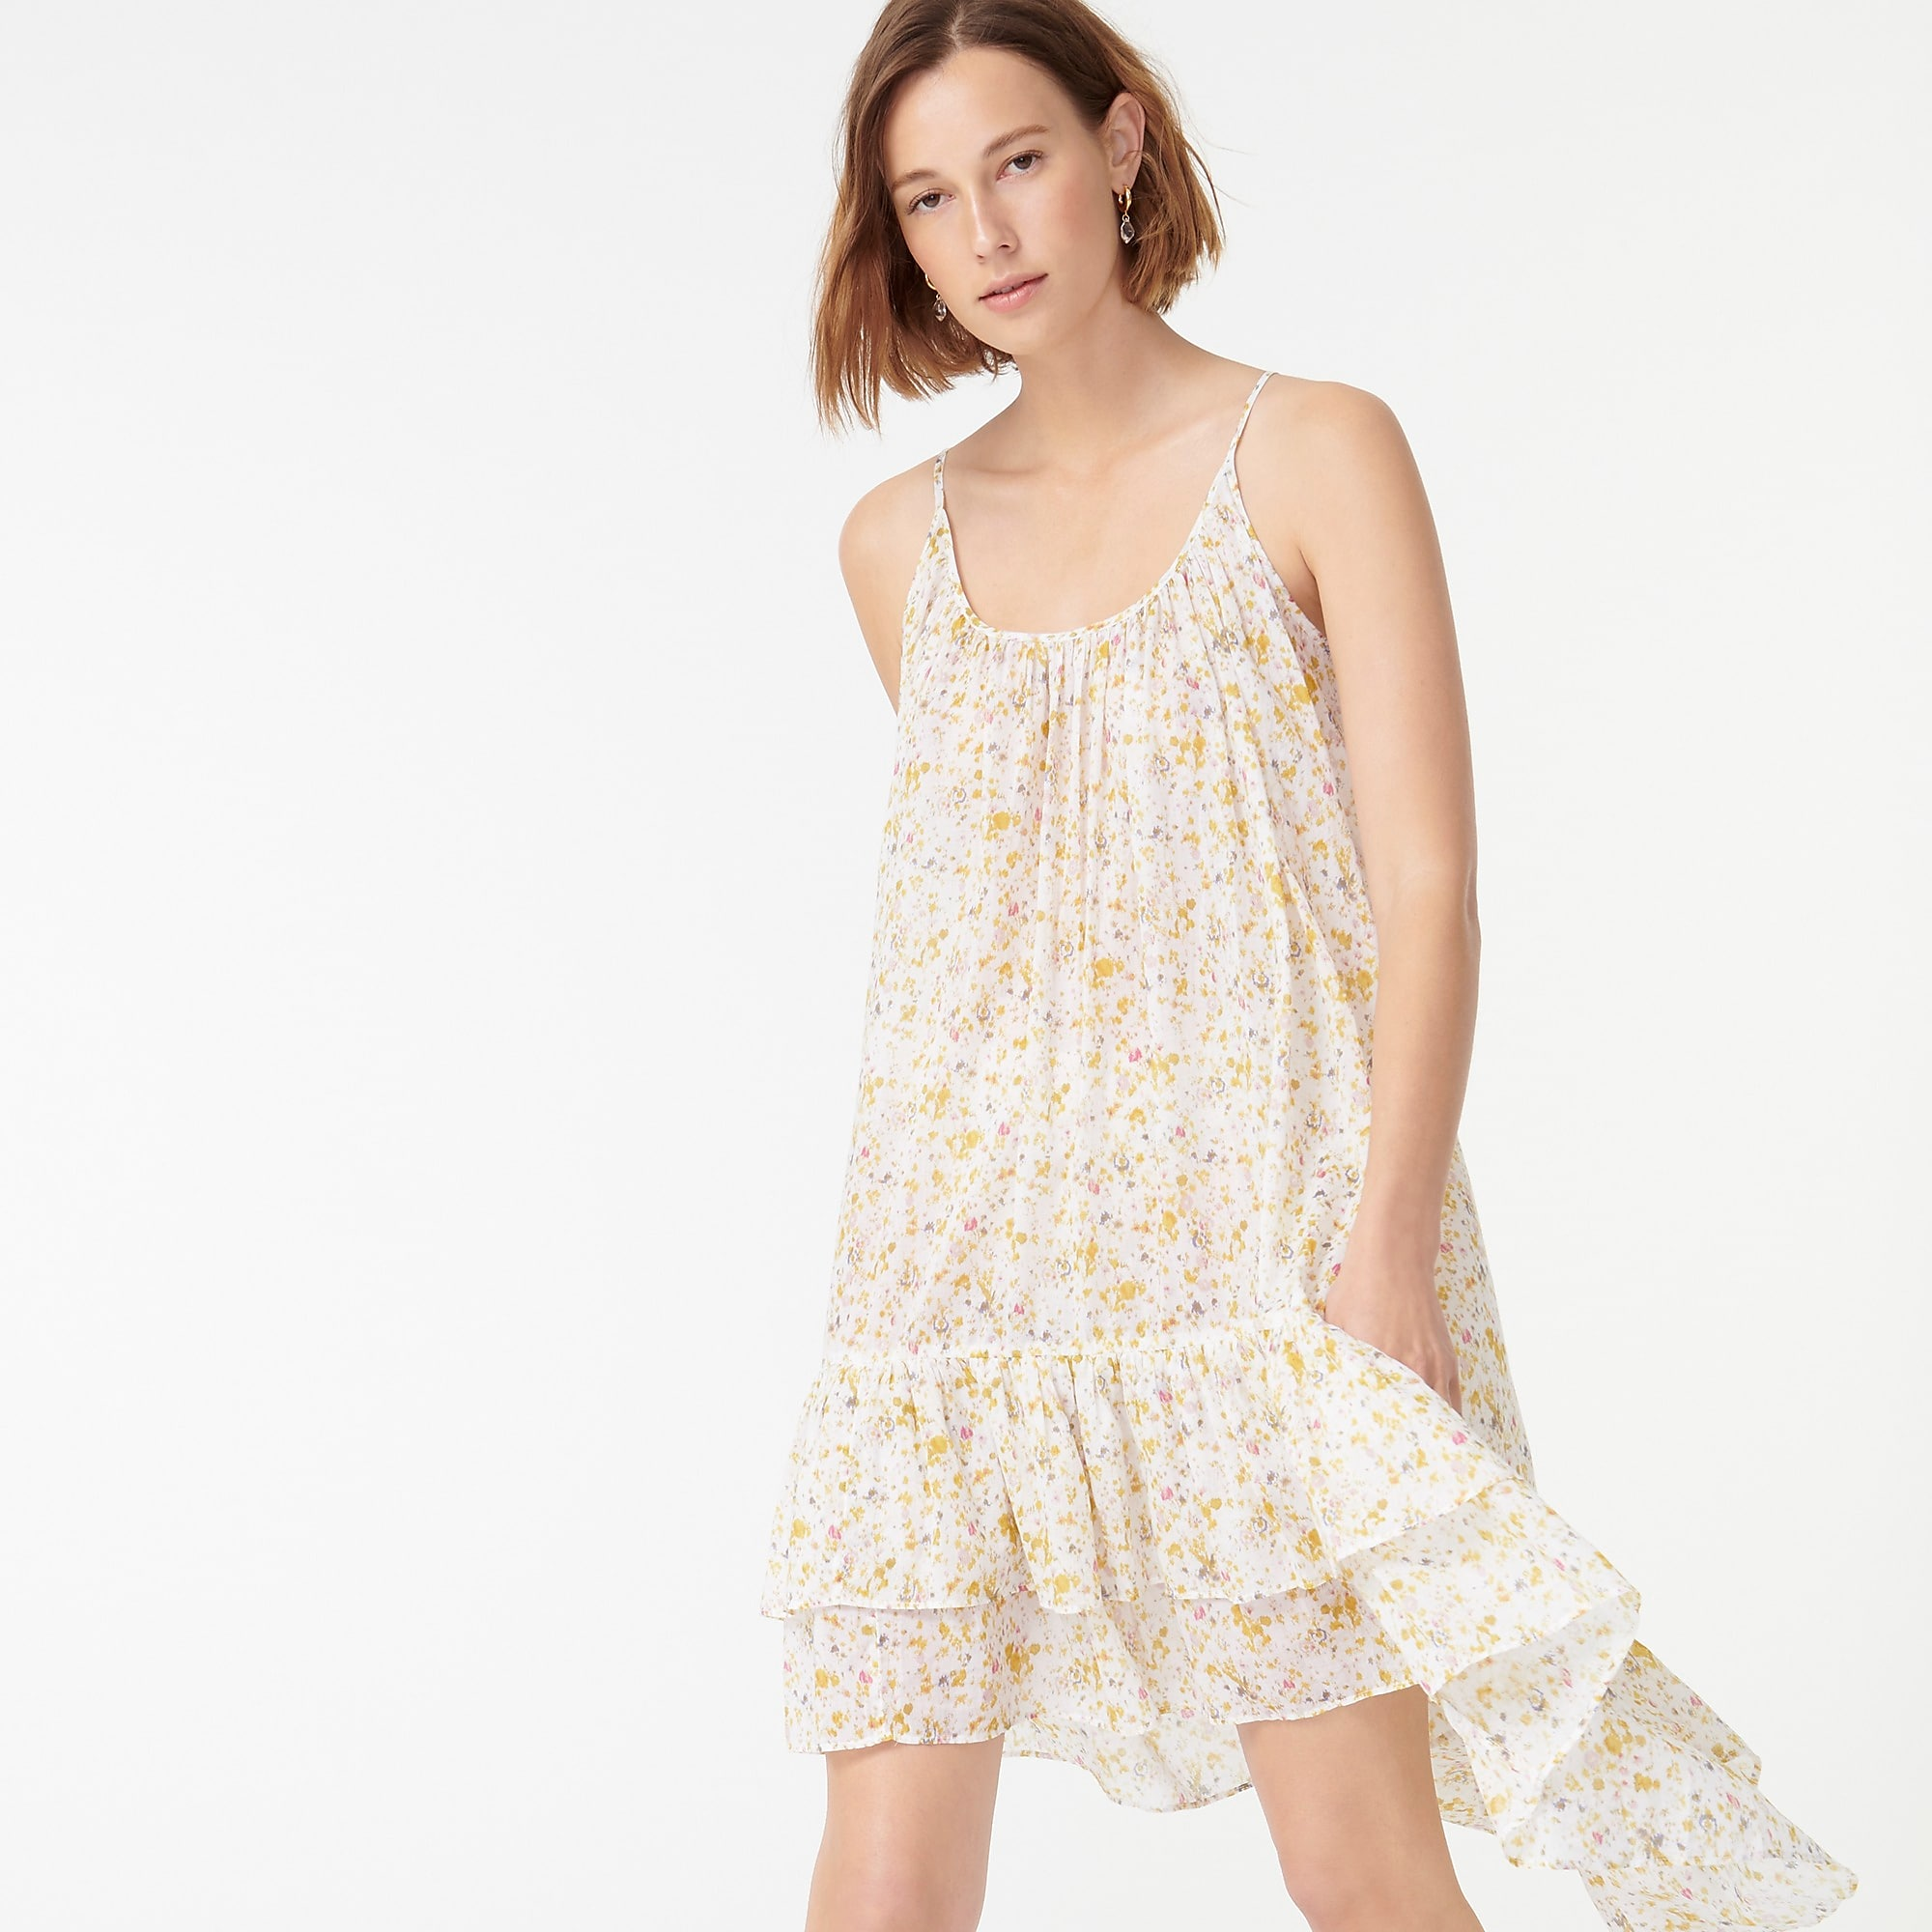 woman wearing J.Crew Tiered Cotton Voile Beach Dress in Soft Posies